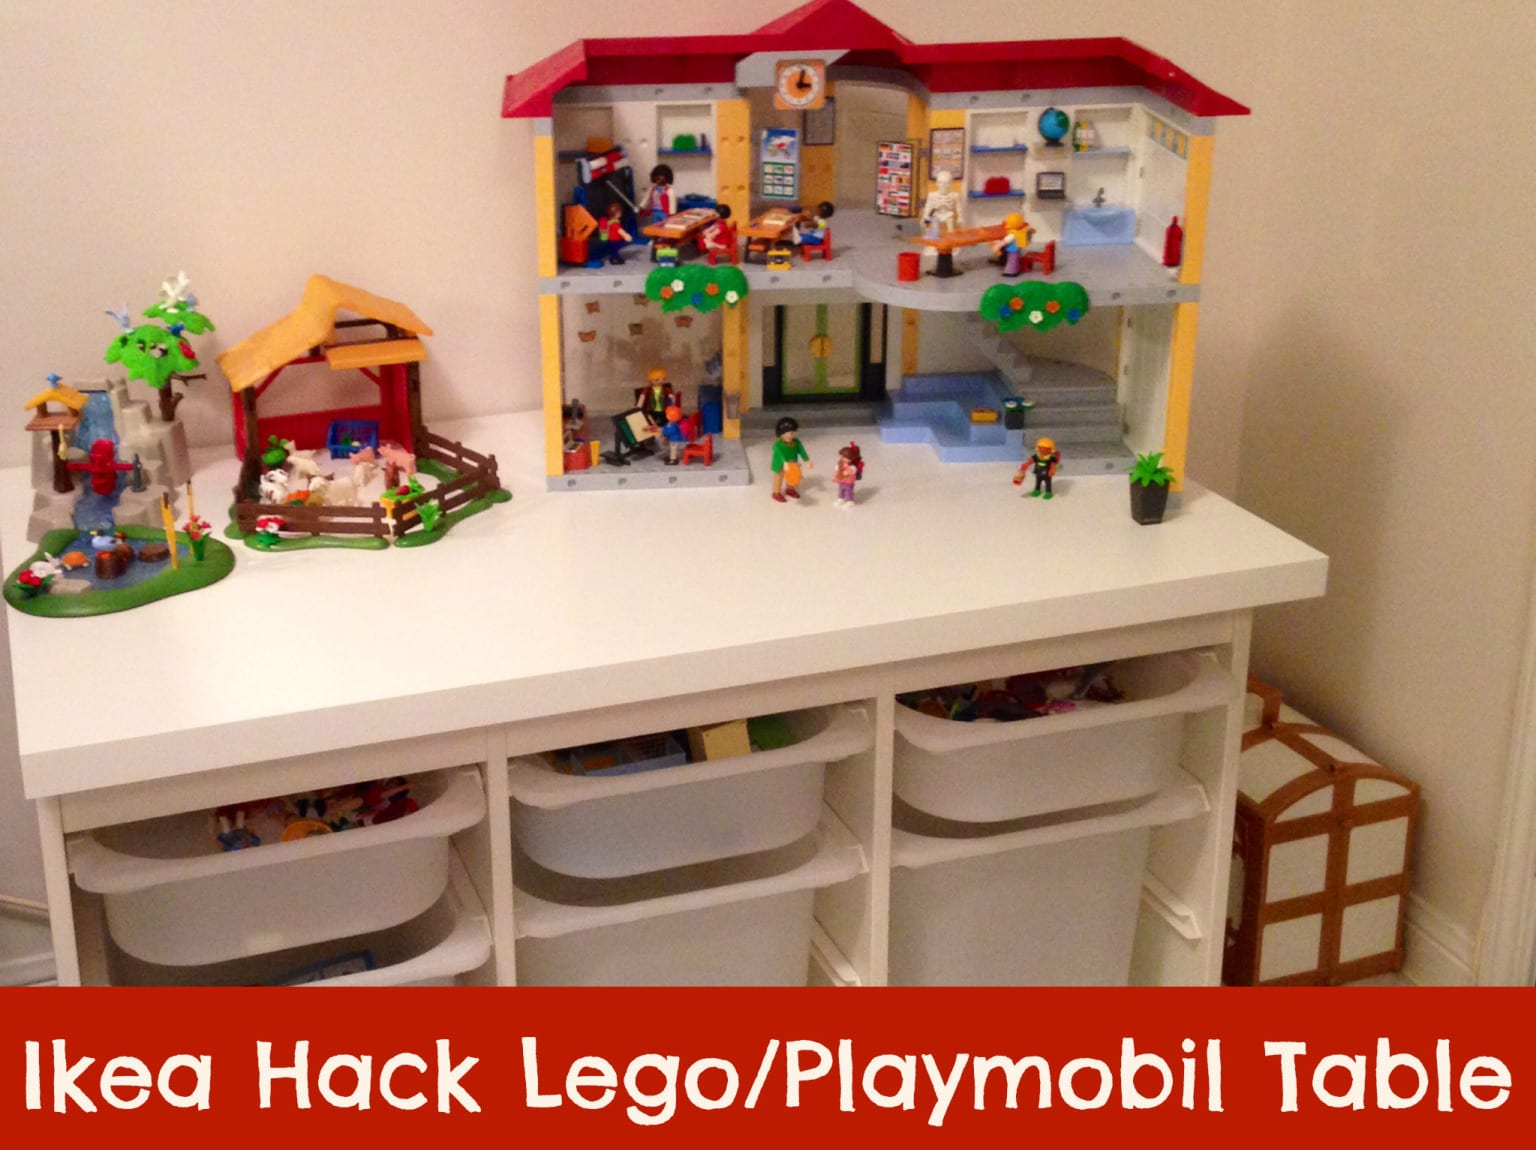 Ikea Hack Table Lego Playmobil